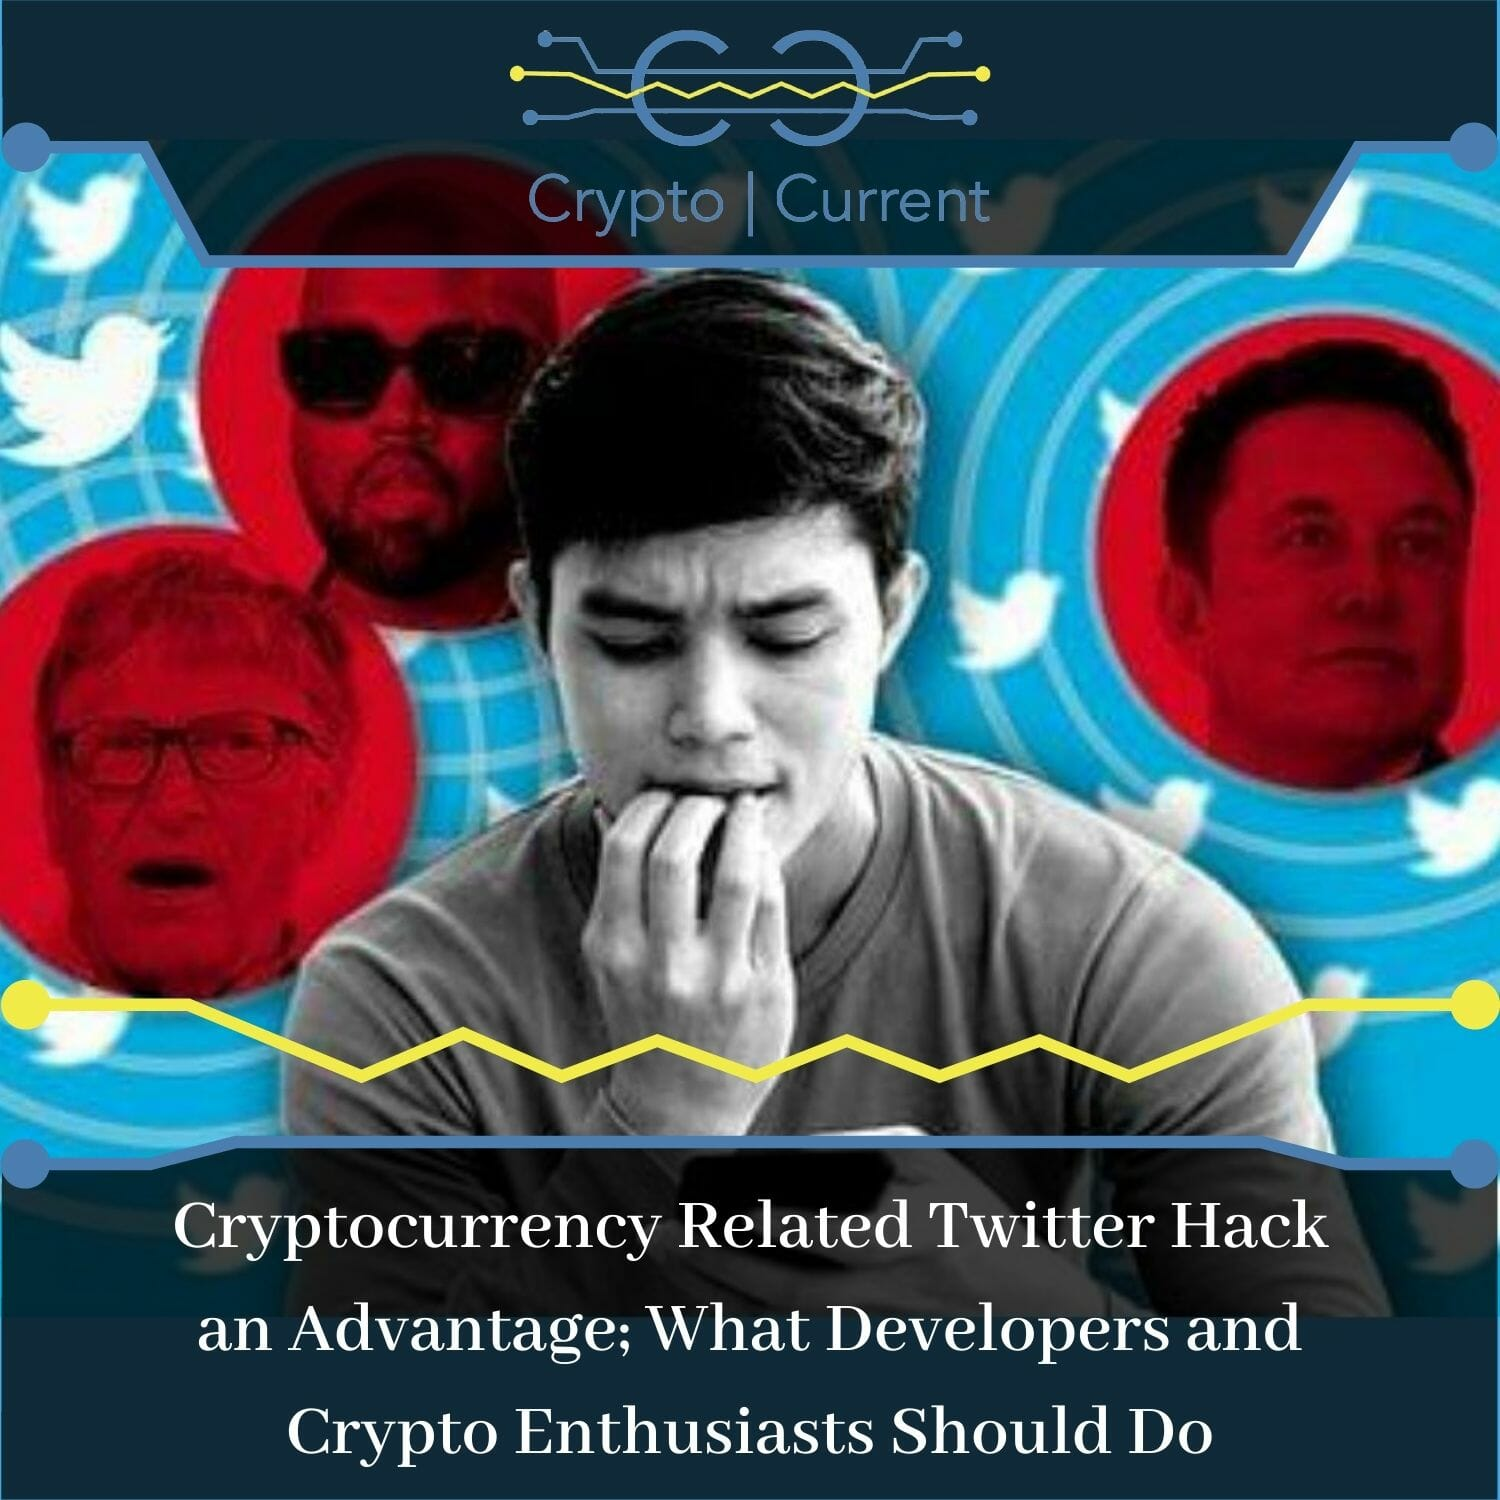 Cryptocurrency Related Twitter Hack an Advantage; What Developers and Crypto Enthusiasts Should Do